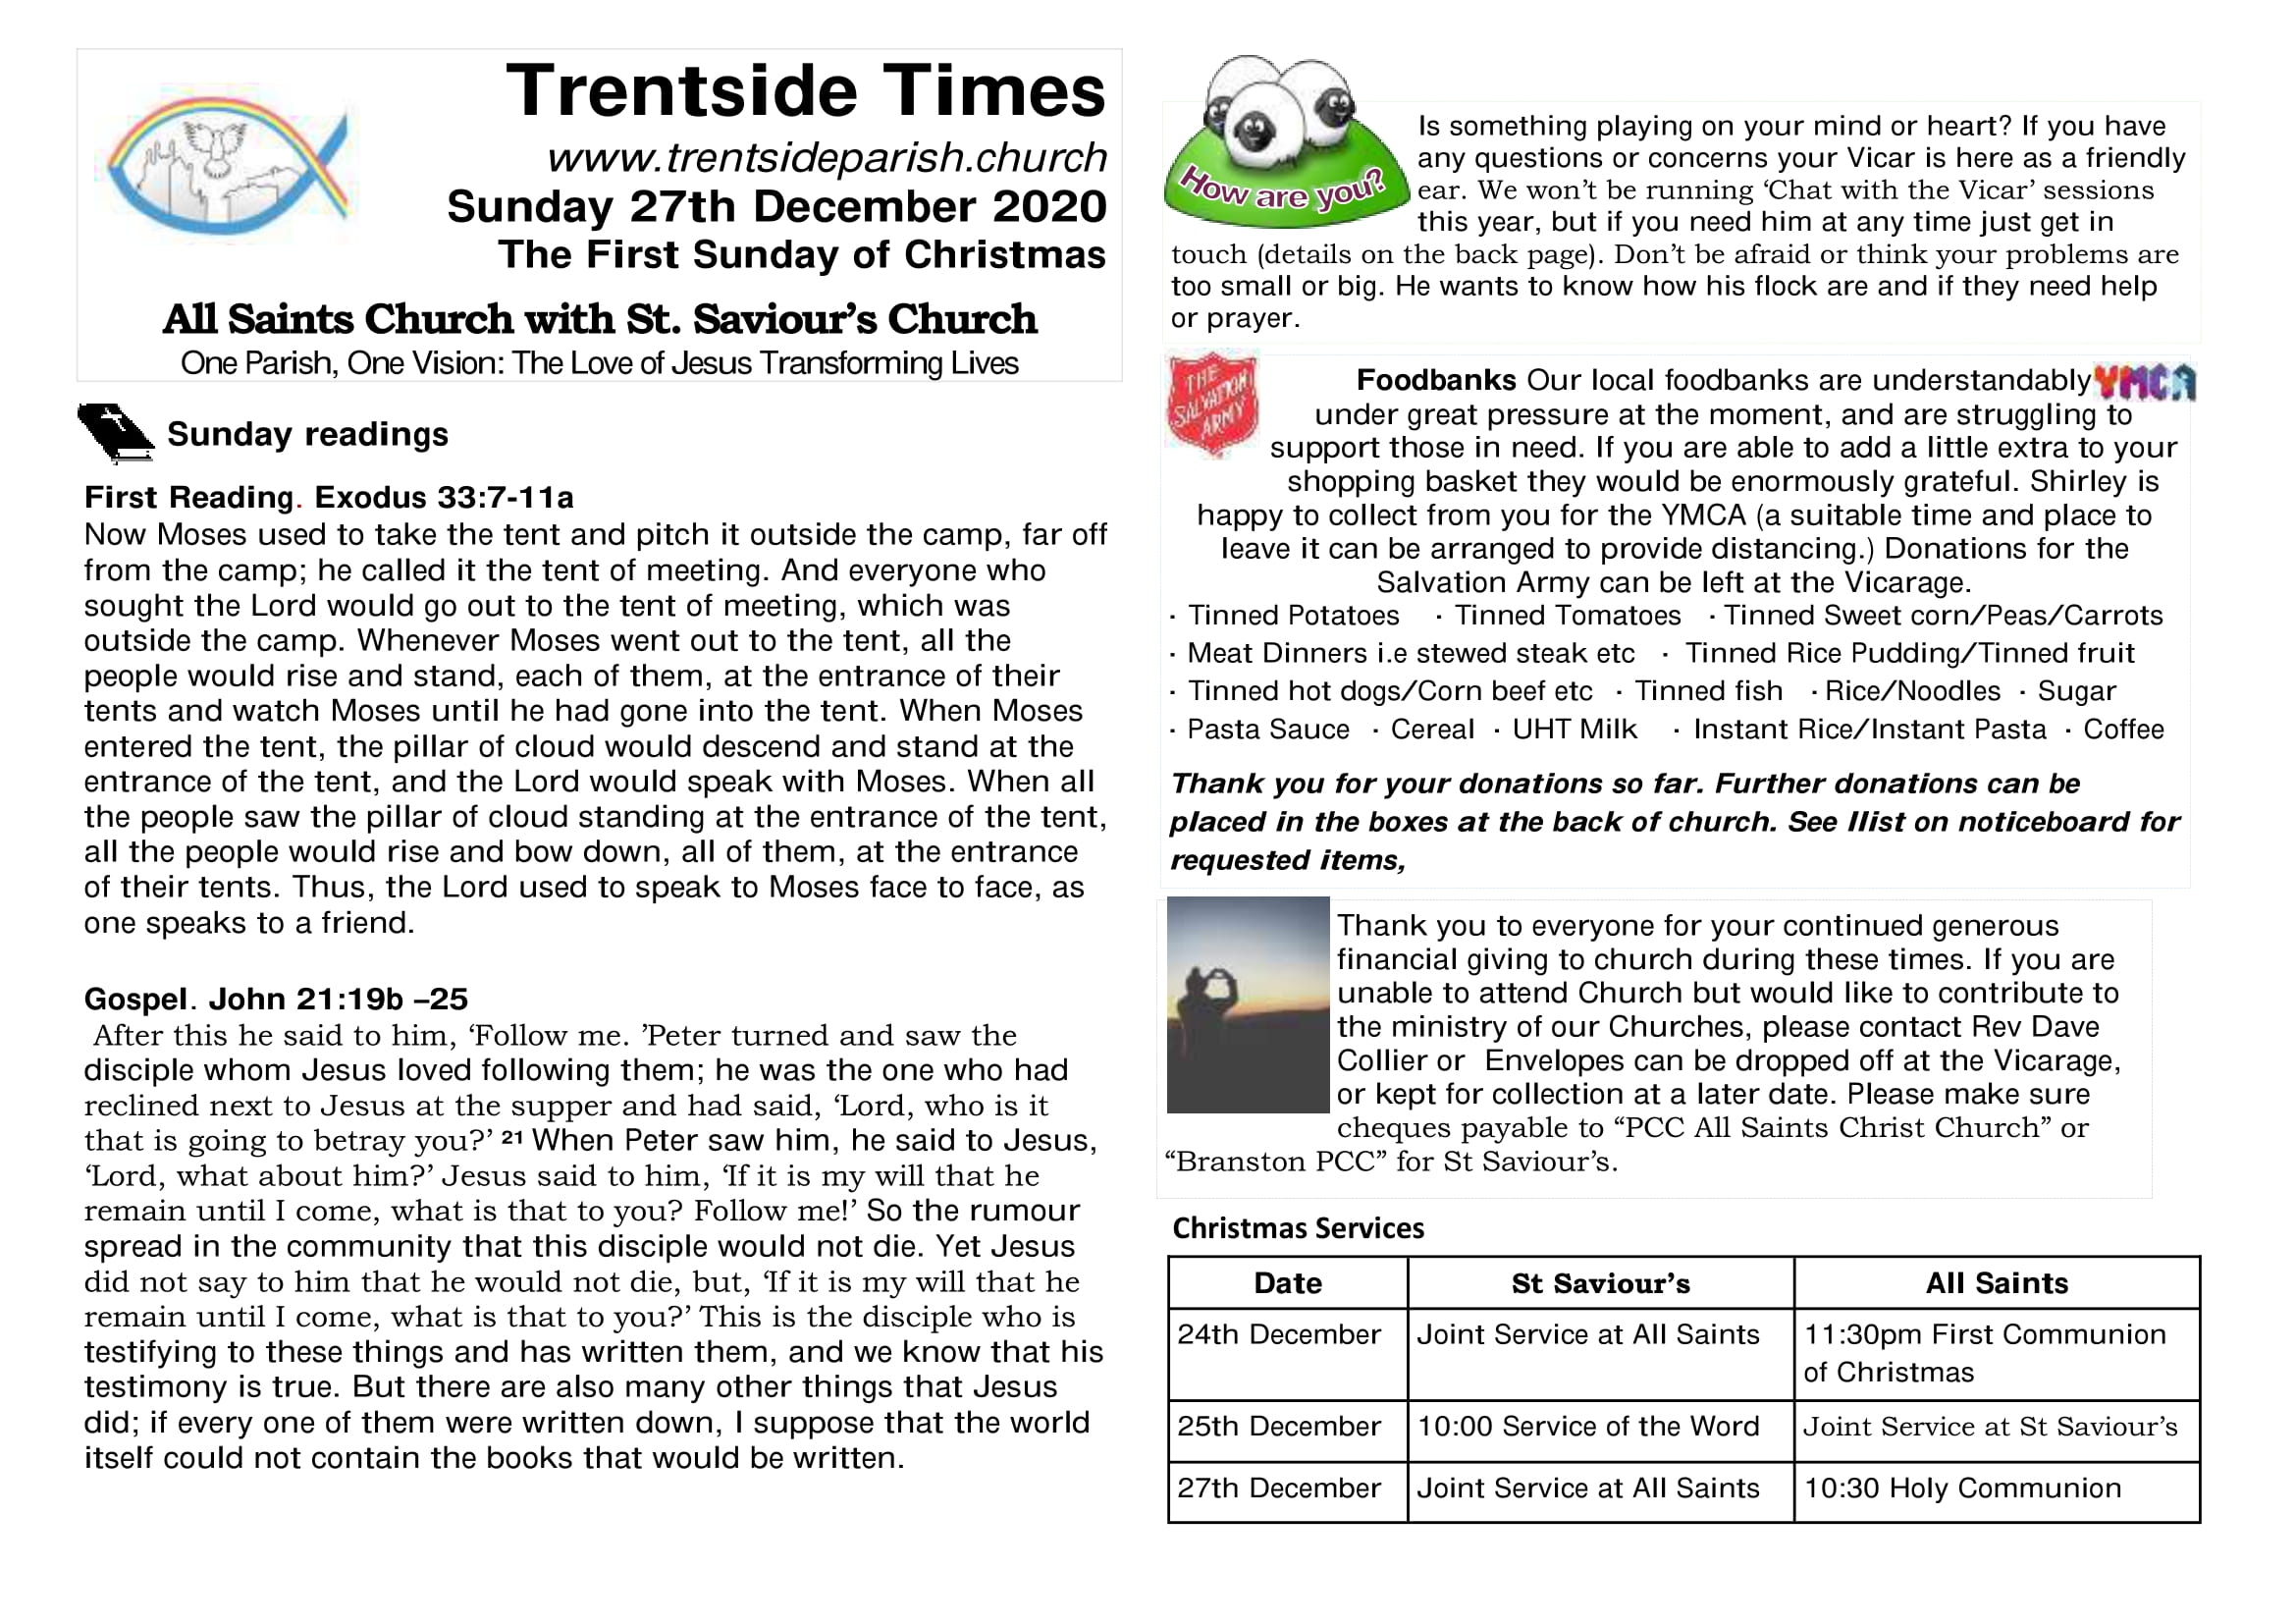 27th December Trentside Notices-page 1